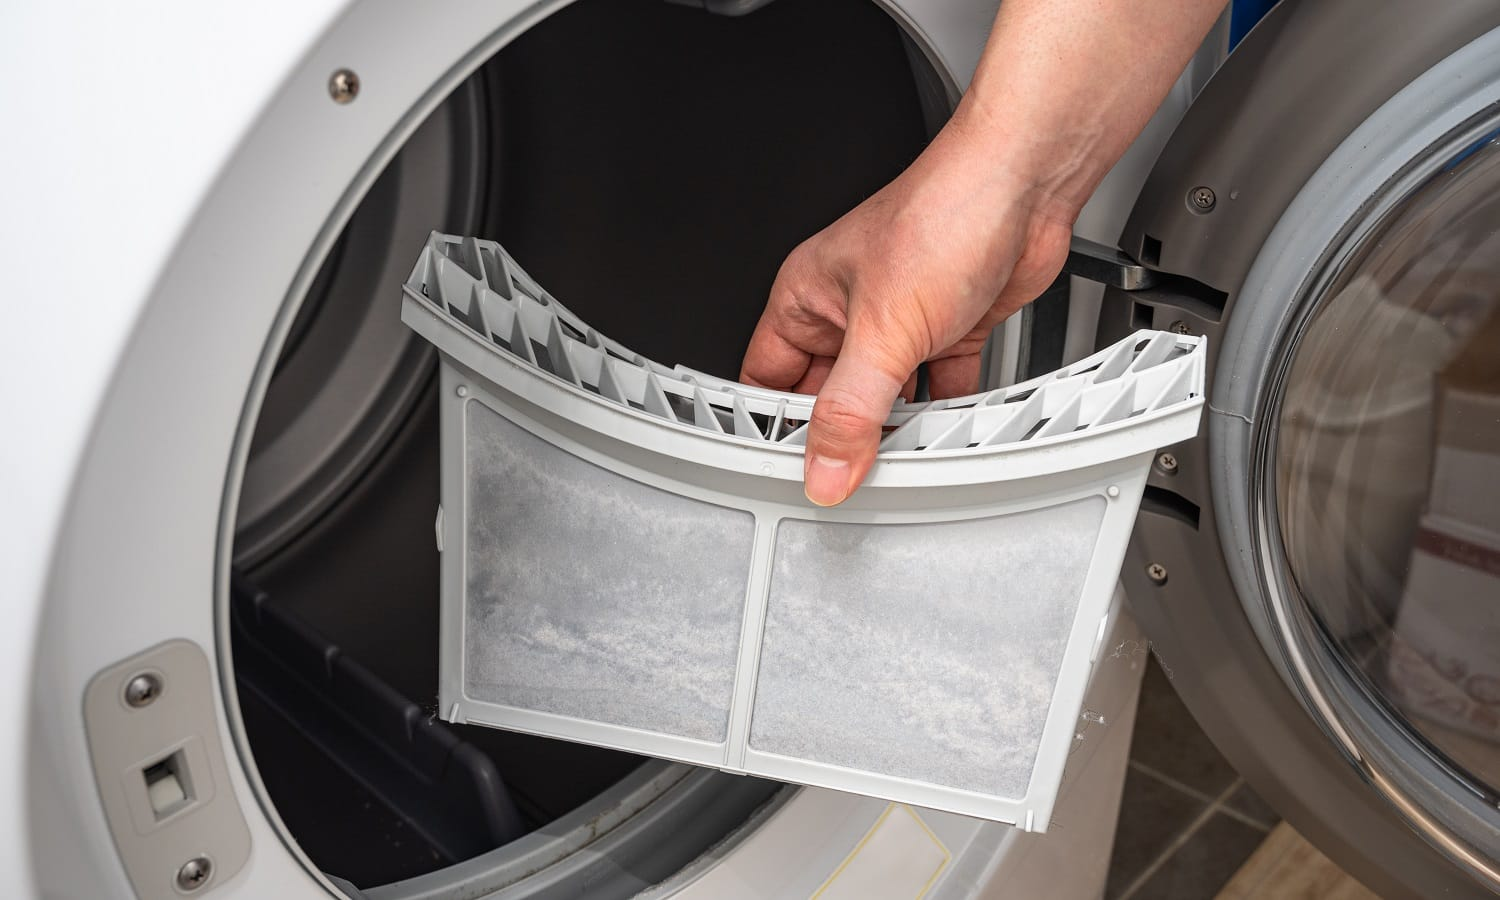 Dust and dirt trapped by the clothes dryer filter